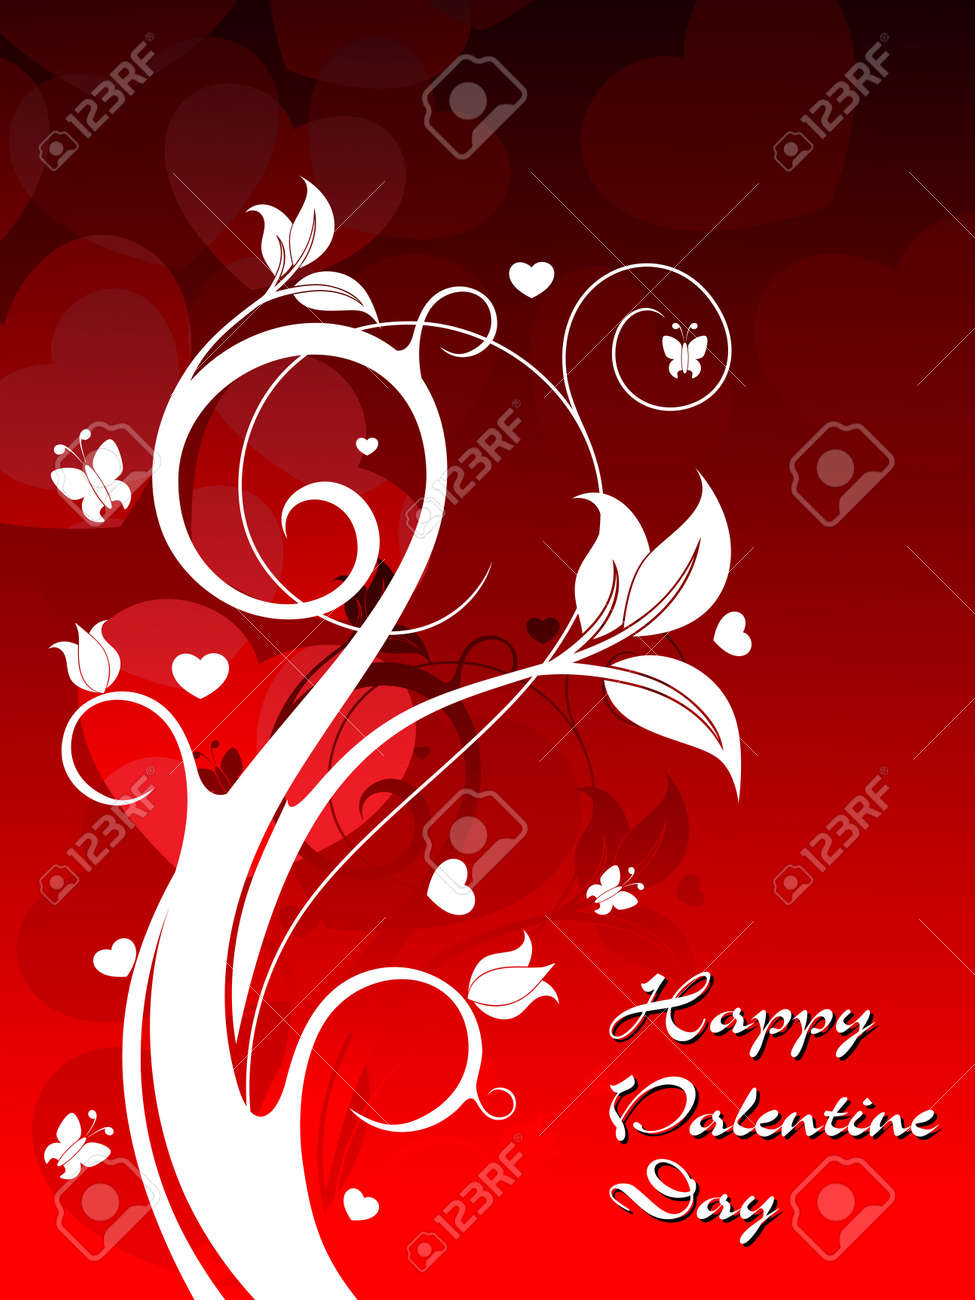 creative floral design on red heart shape background vector for valentine day Stock Vector - 12015064